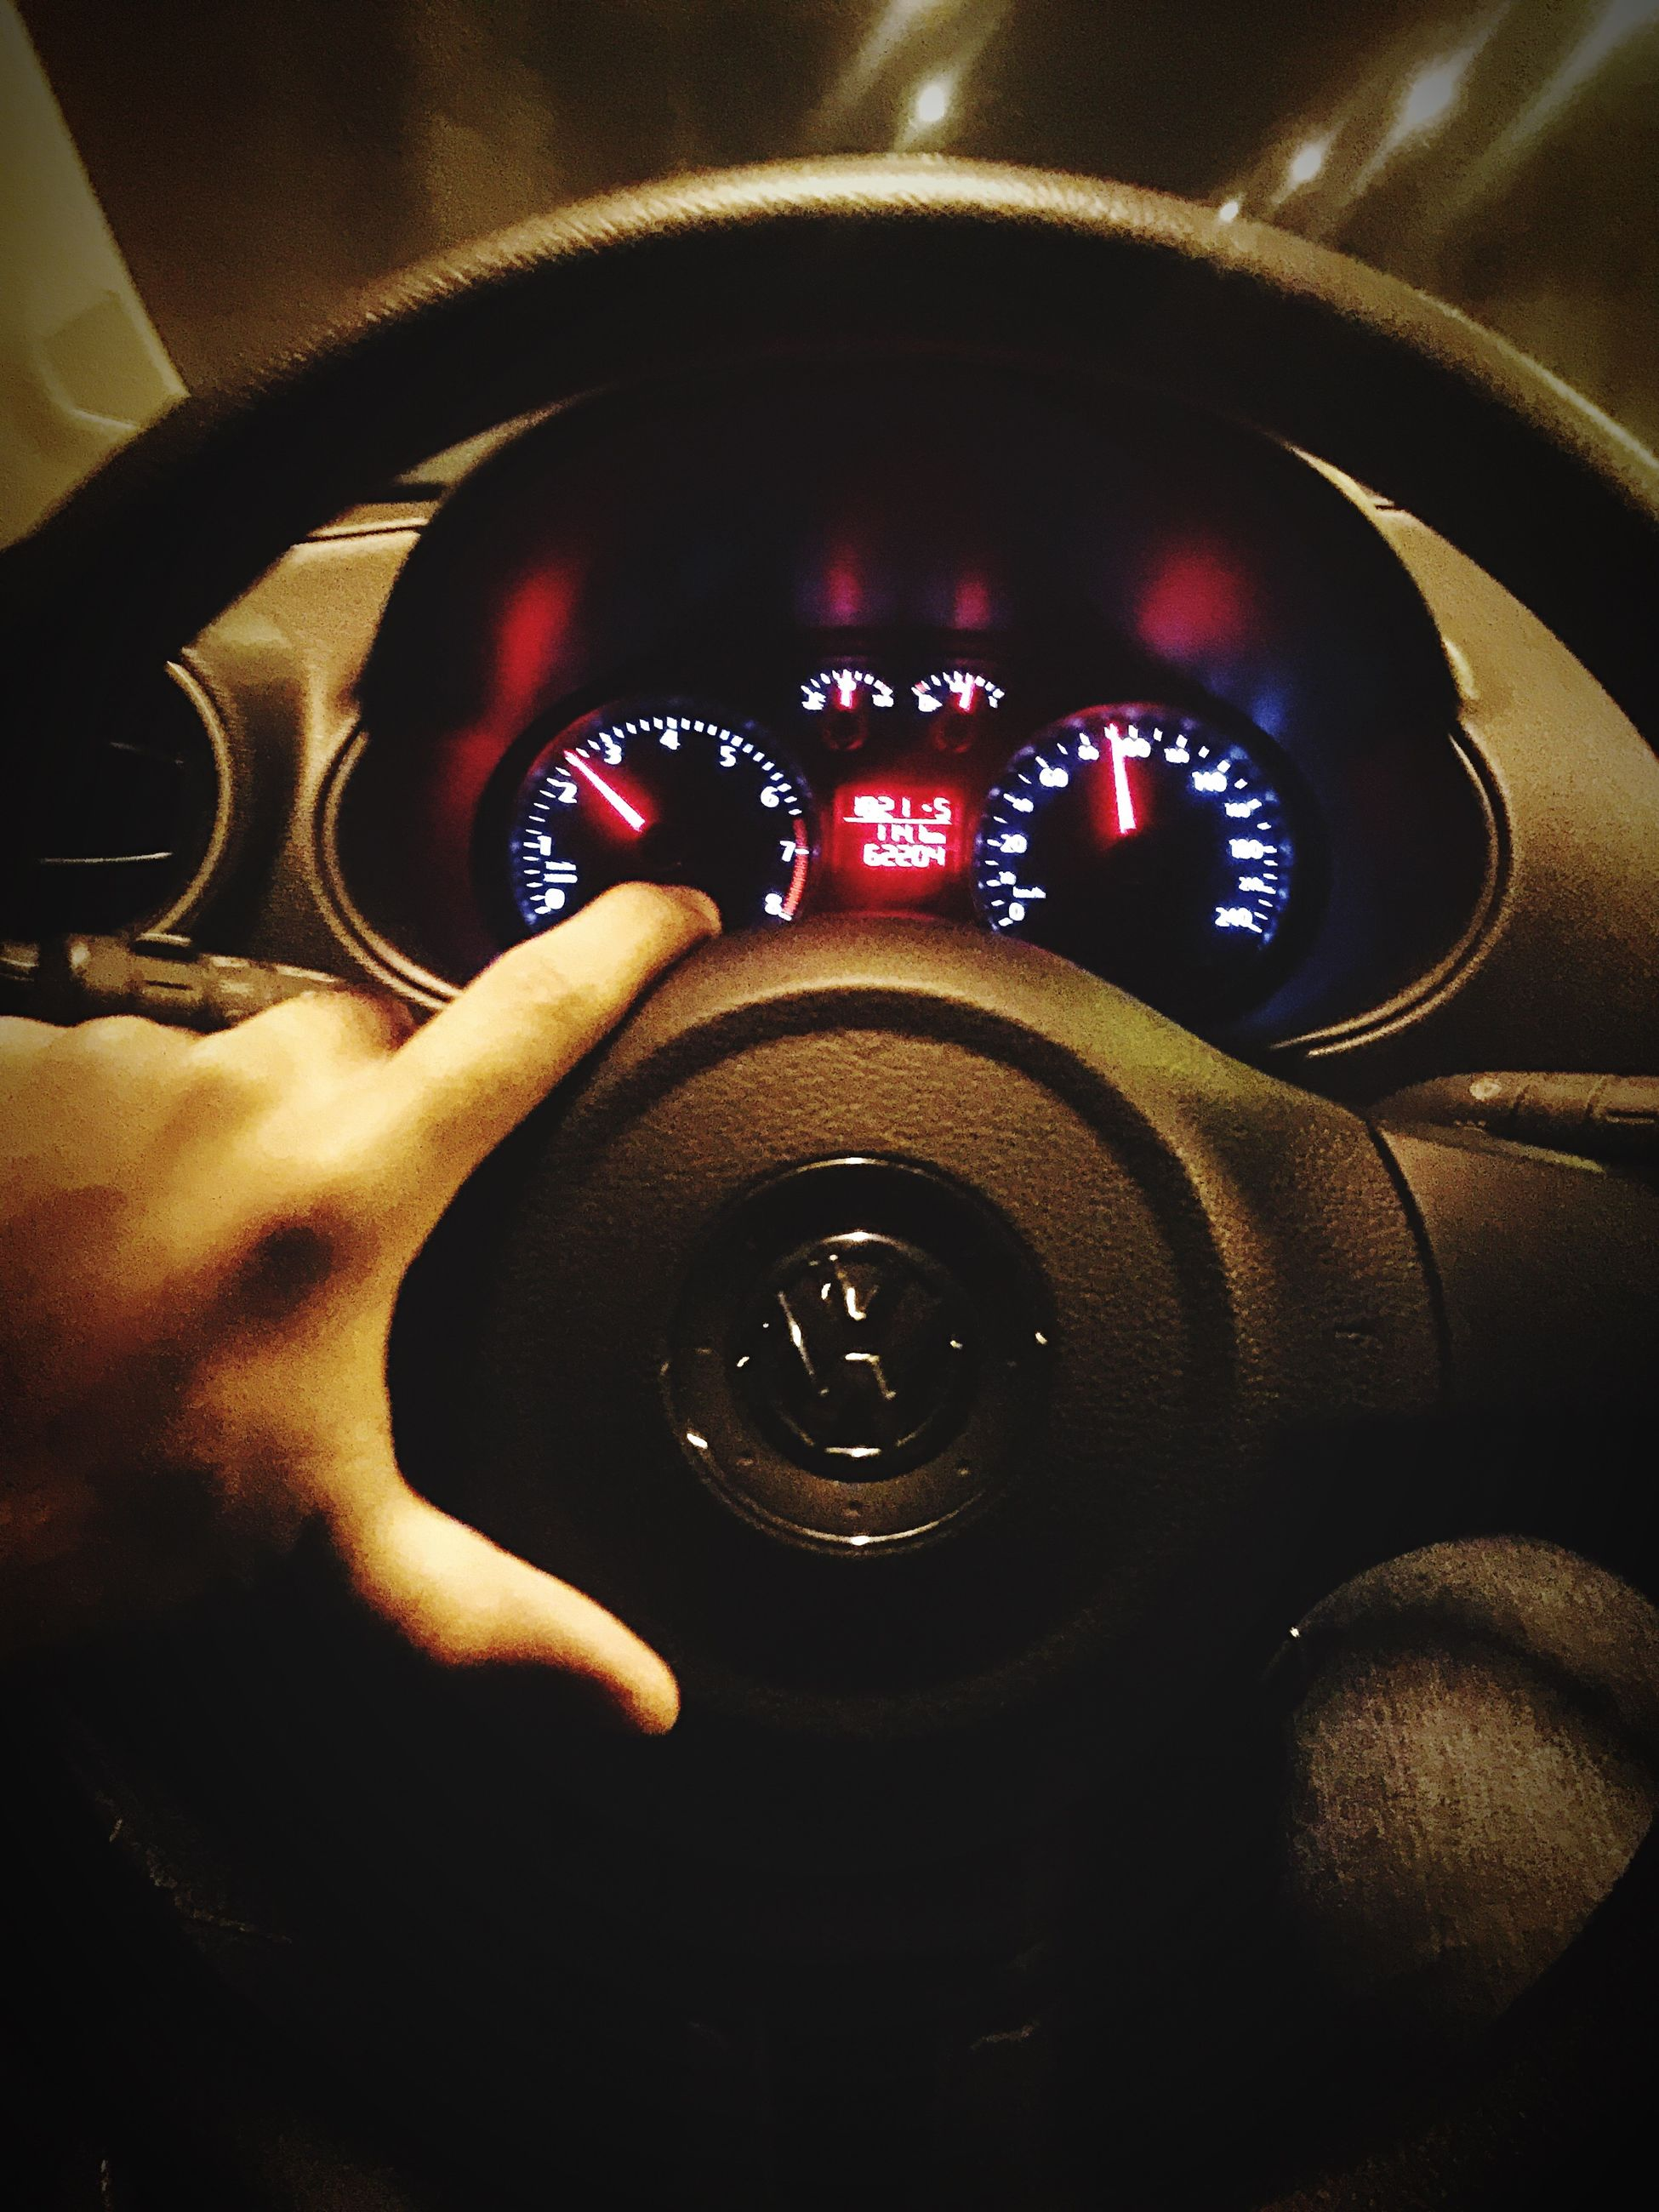 indoors, car interior, close-up, transportation, real people, technology, day